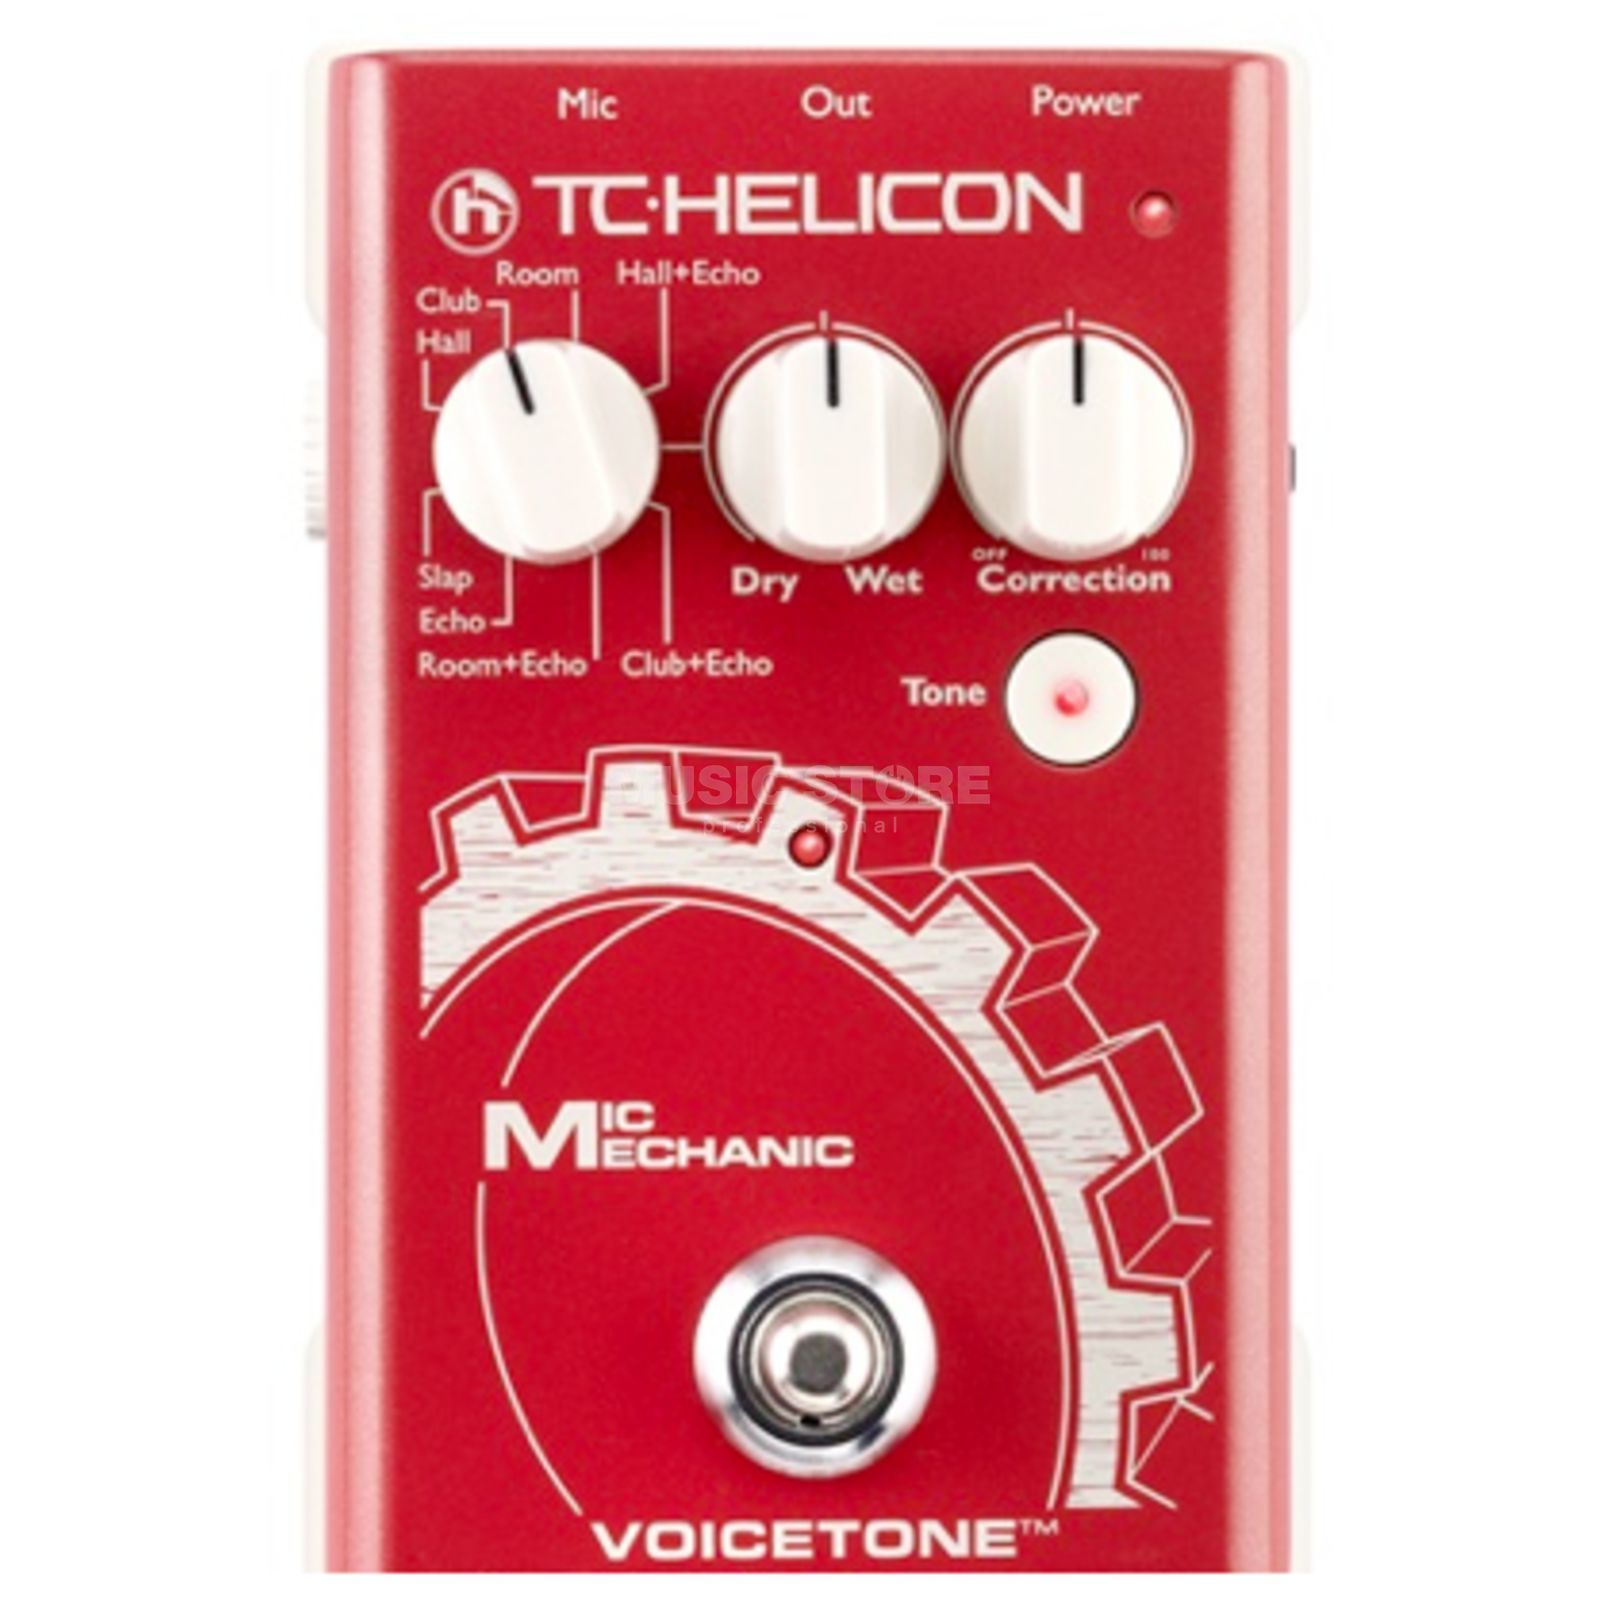 TC-Helicon VoiceTone Mic Mechanic Vocal Effects Pedal Produktbillede